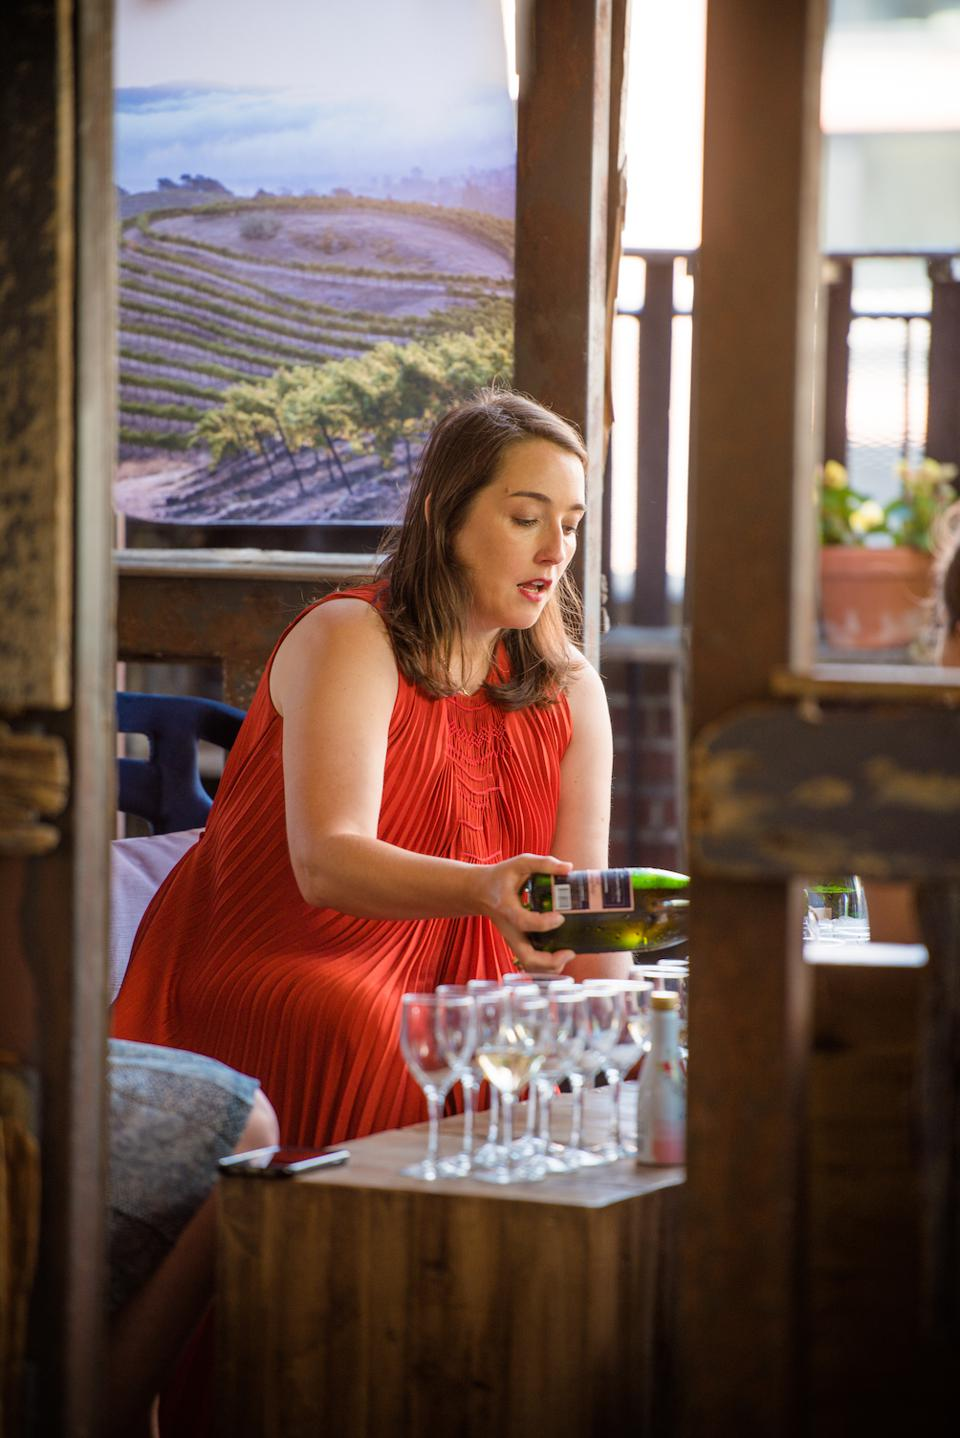 Initially joining as an intern, Lhote, who was raised in Champagne, France, worked her way up the ranks of the company to her present position as Director of Winemaking at Domaine Chandon.